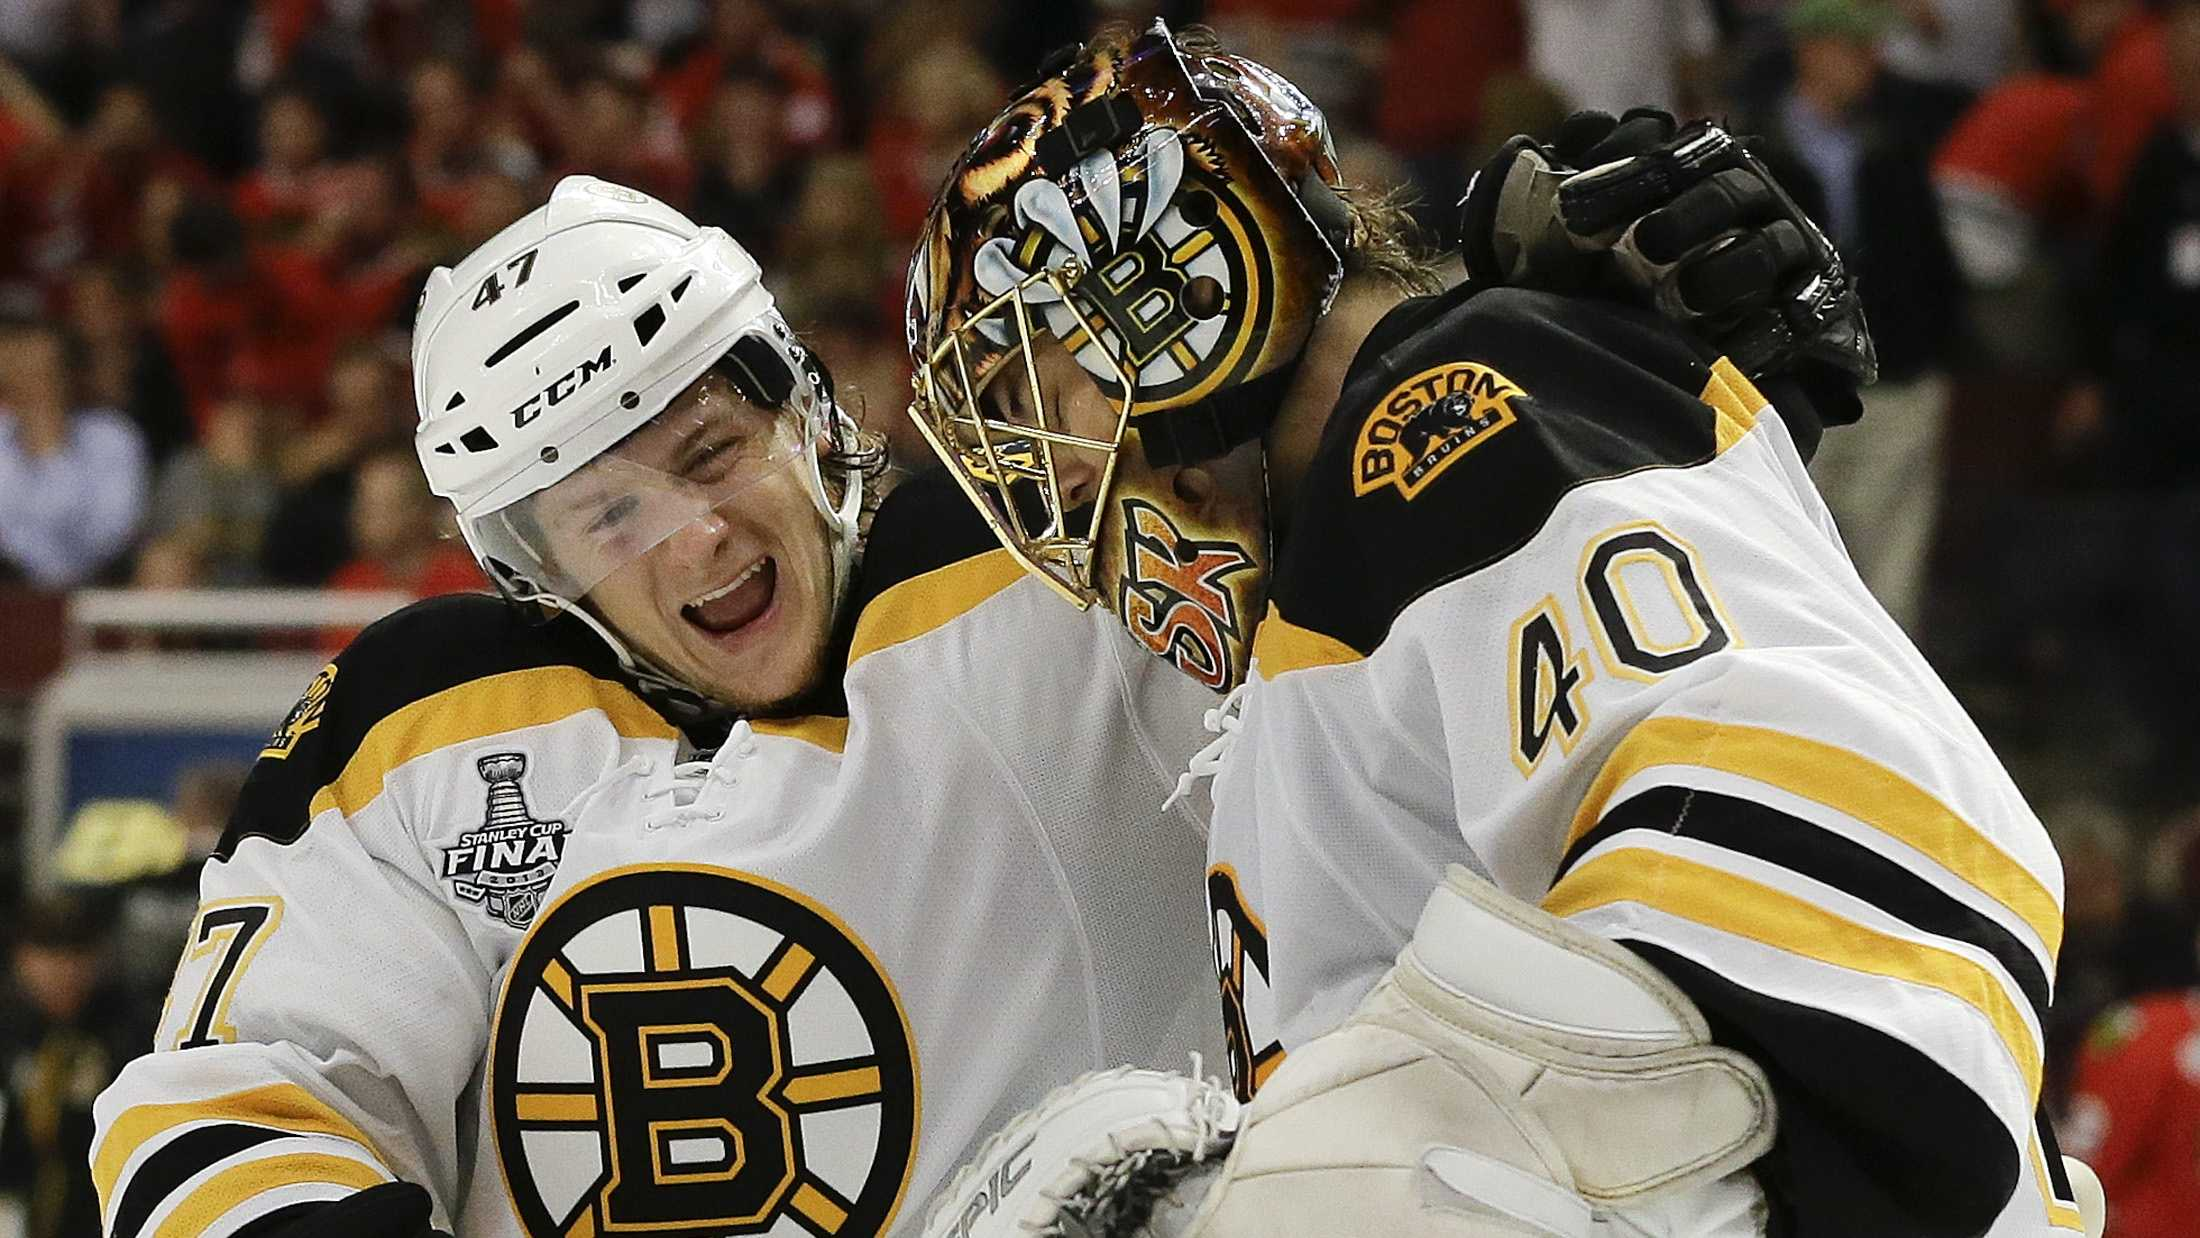 Boston Bruins defenseman Torey Krug (47) celebrates with goalie Tuukka Rask (40) after the Bruins scored a goal against the Chicago Blackhawks in sudden death overtime during Game 2 of the NHL hockey Stanley Cup Finals, Saturday, June 15, 2013, in Chicago. The Bruins won 2-1.